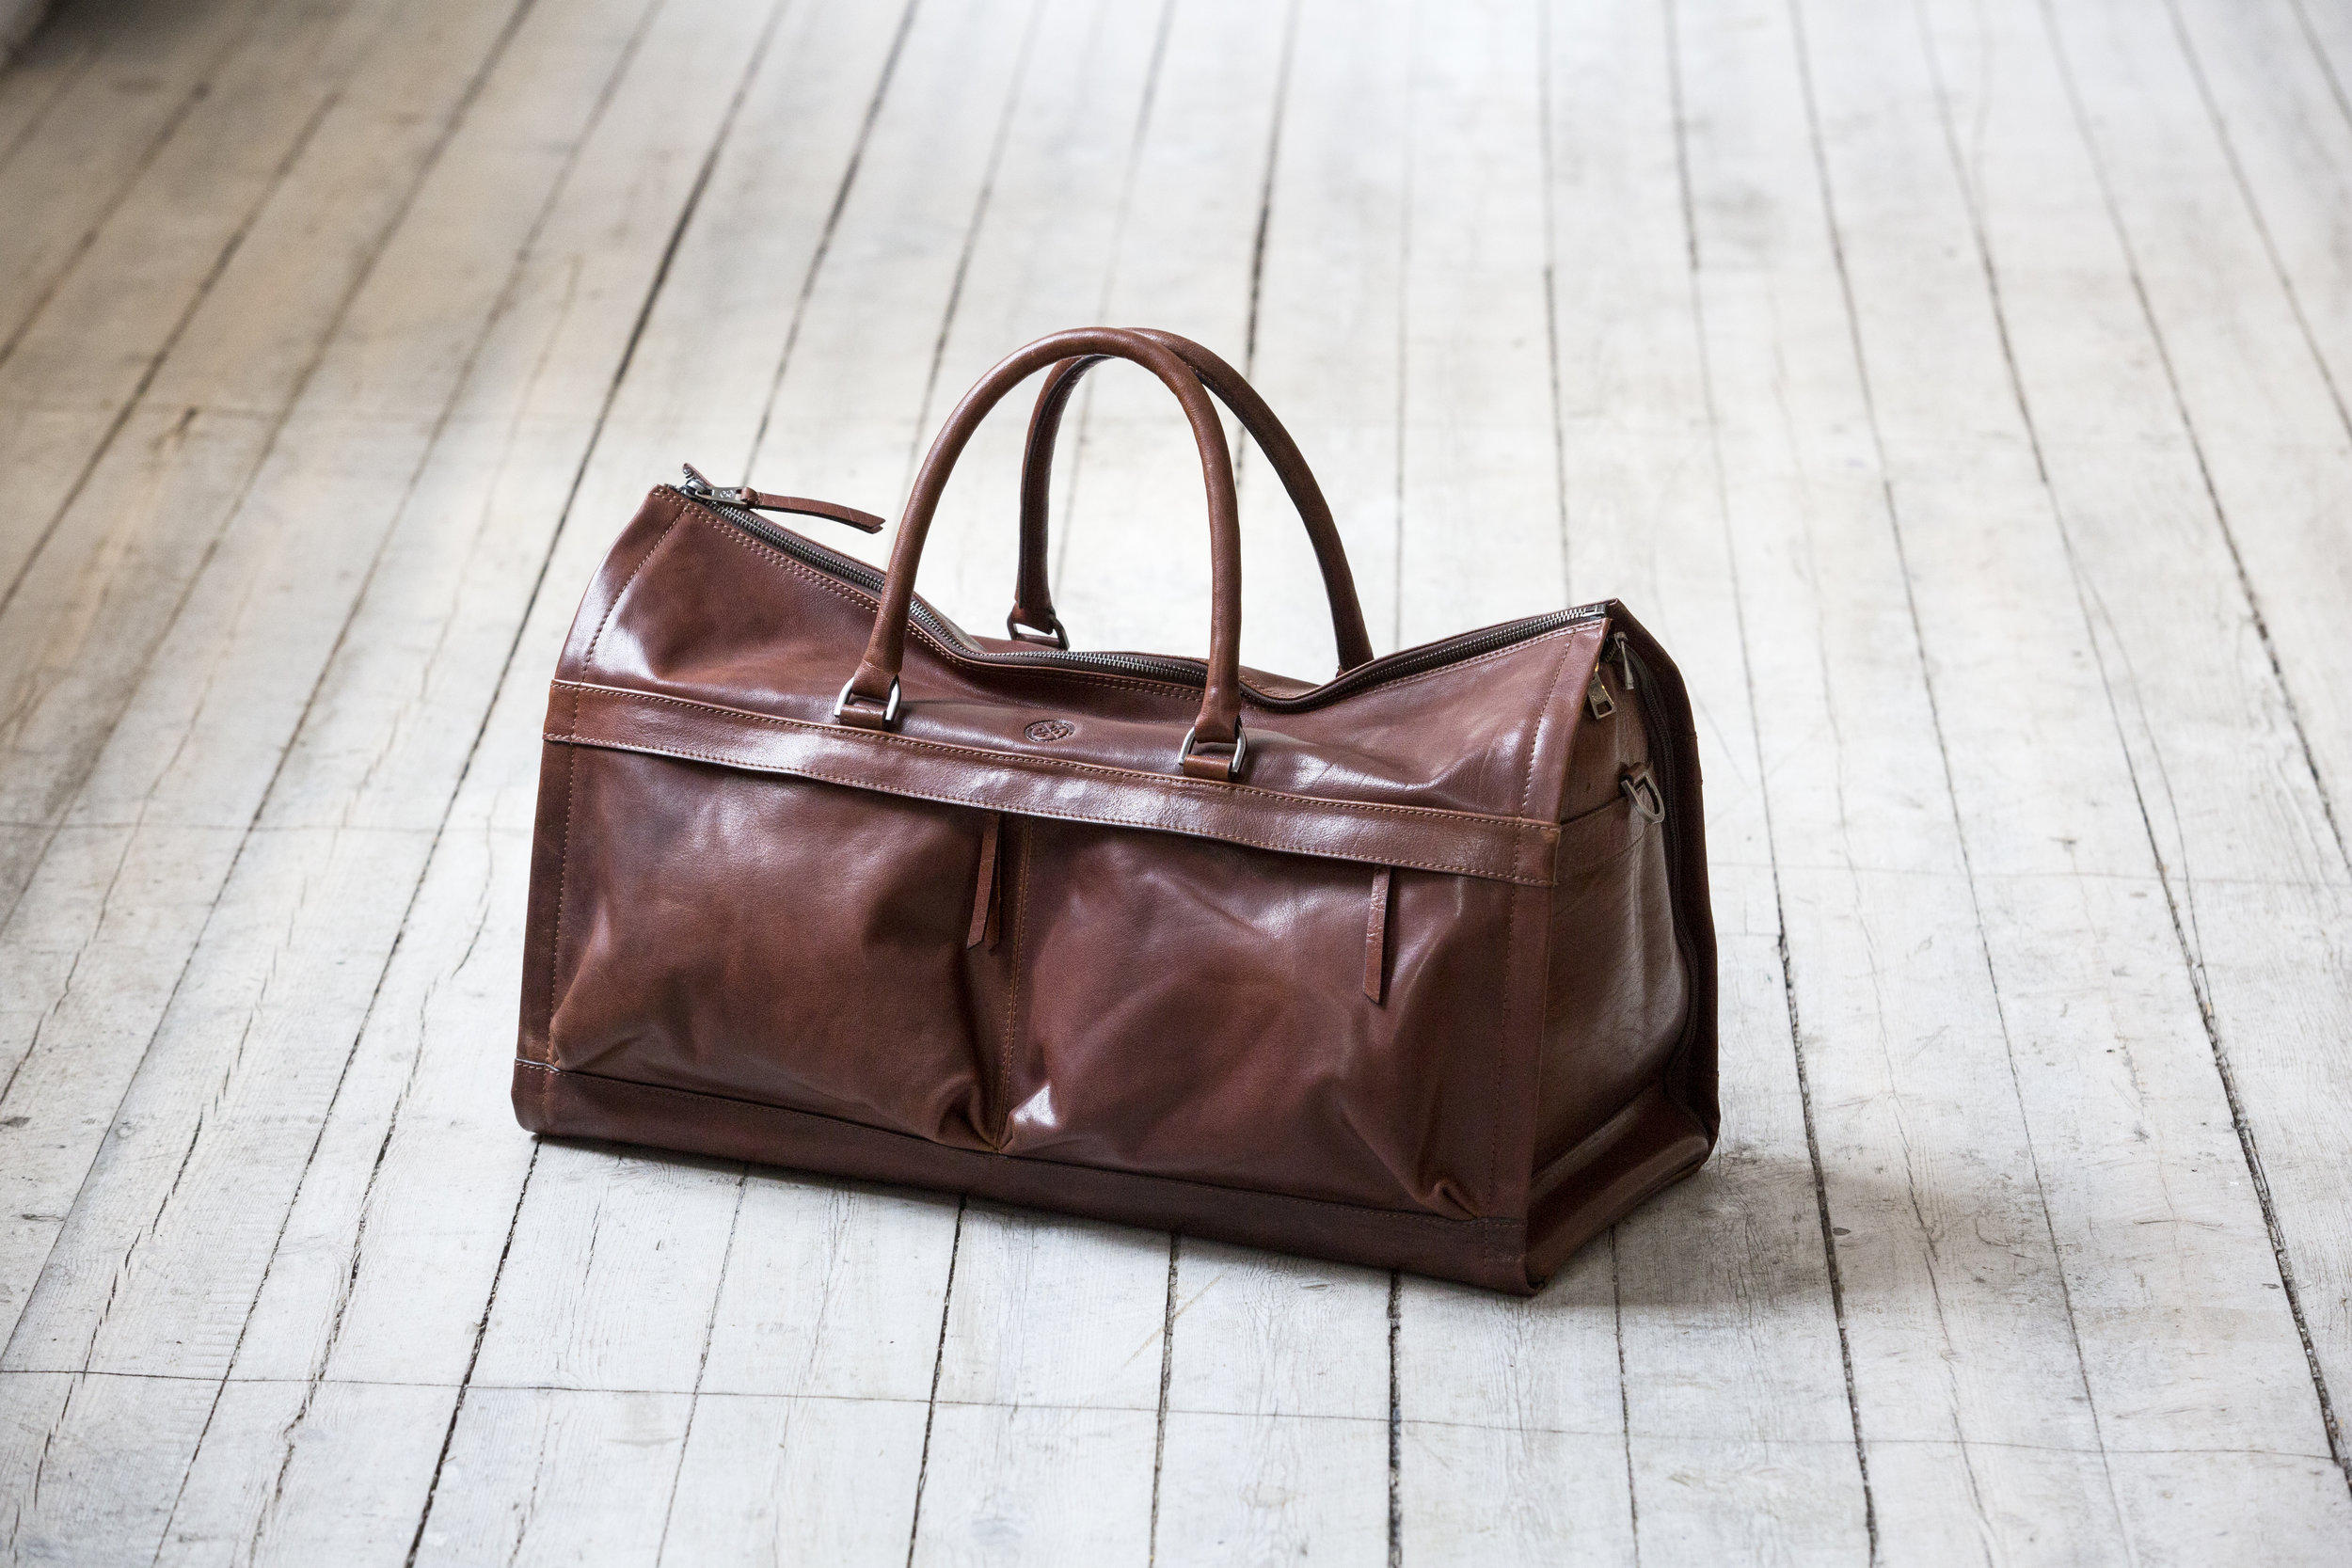 WEEKEND BAGS   We have a wide range of bags in different sizes. Choose the larger one for the longer business trip or the smaller one for a weekend with someone you like. Find your favorite.   Shop